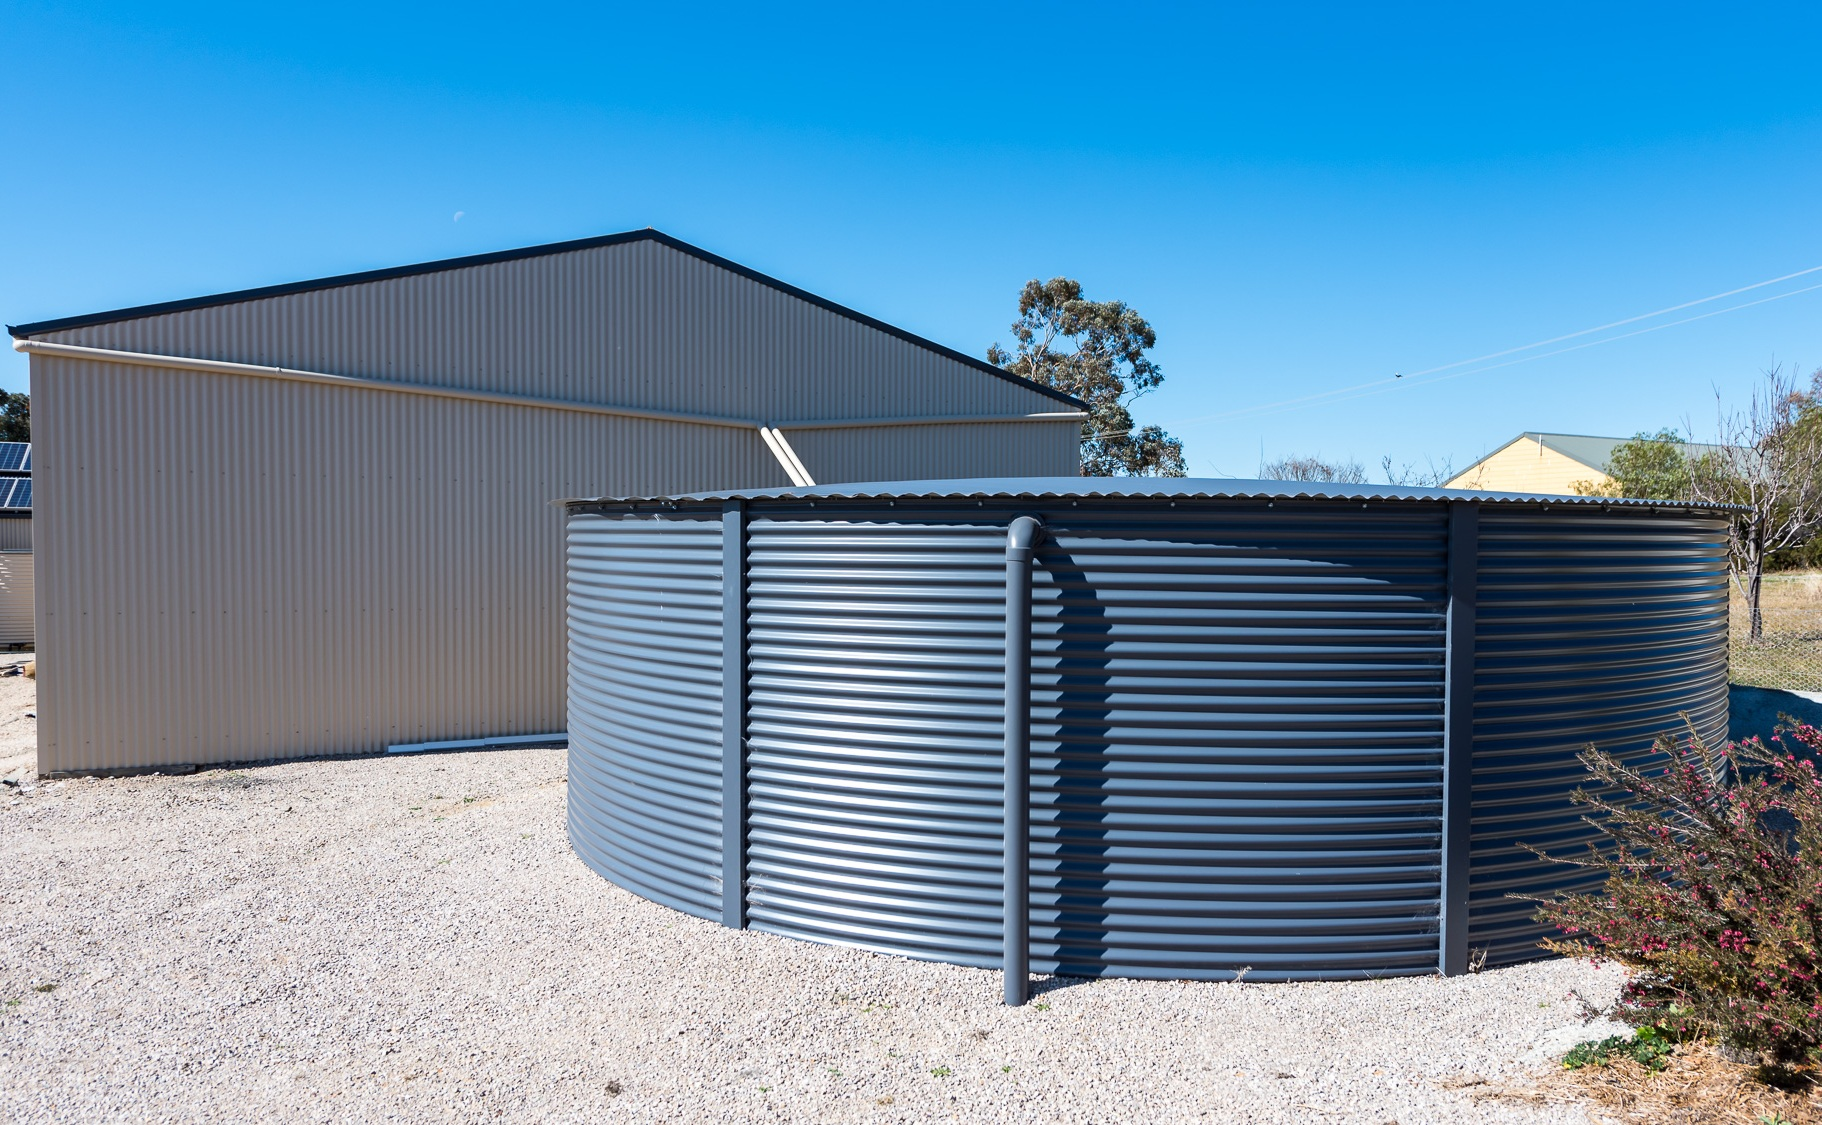 CONTACT FOR A FREE QUOTE - ClearWater Tanks have been building high quality water storage solutions all over NSW for many years.We are dedicated to providing professional, personalised and friendly service.